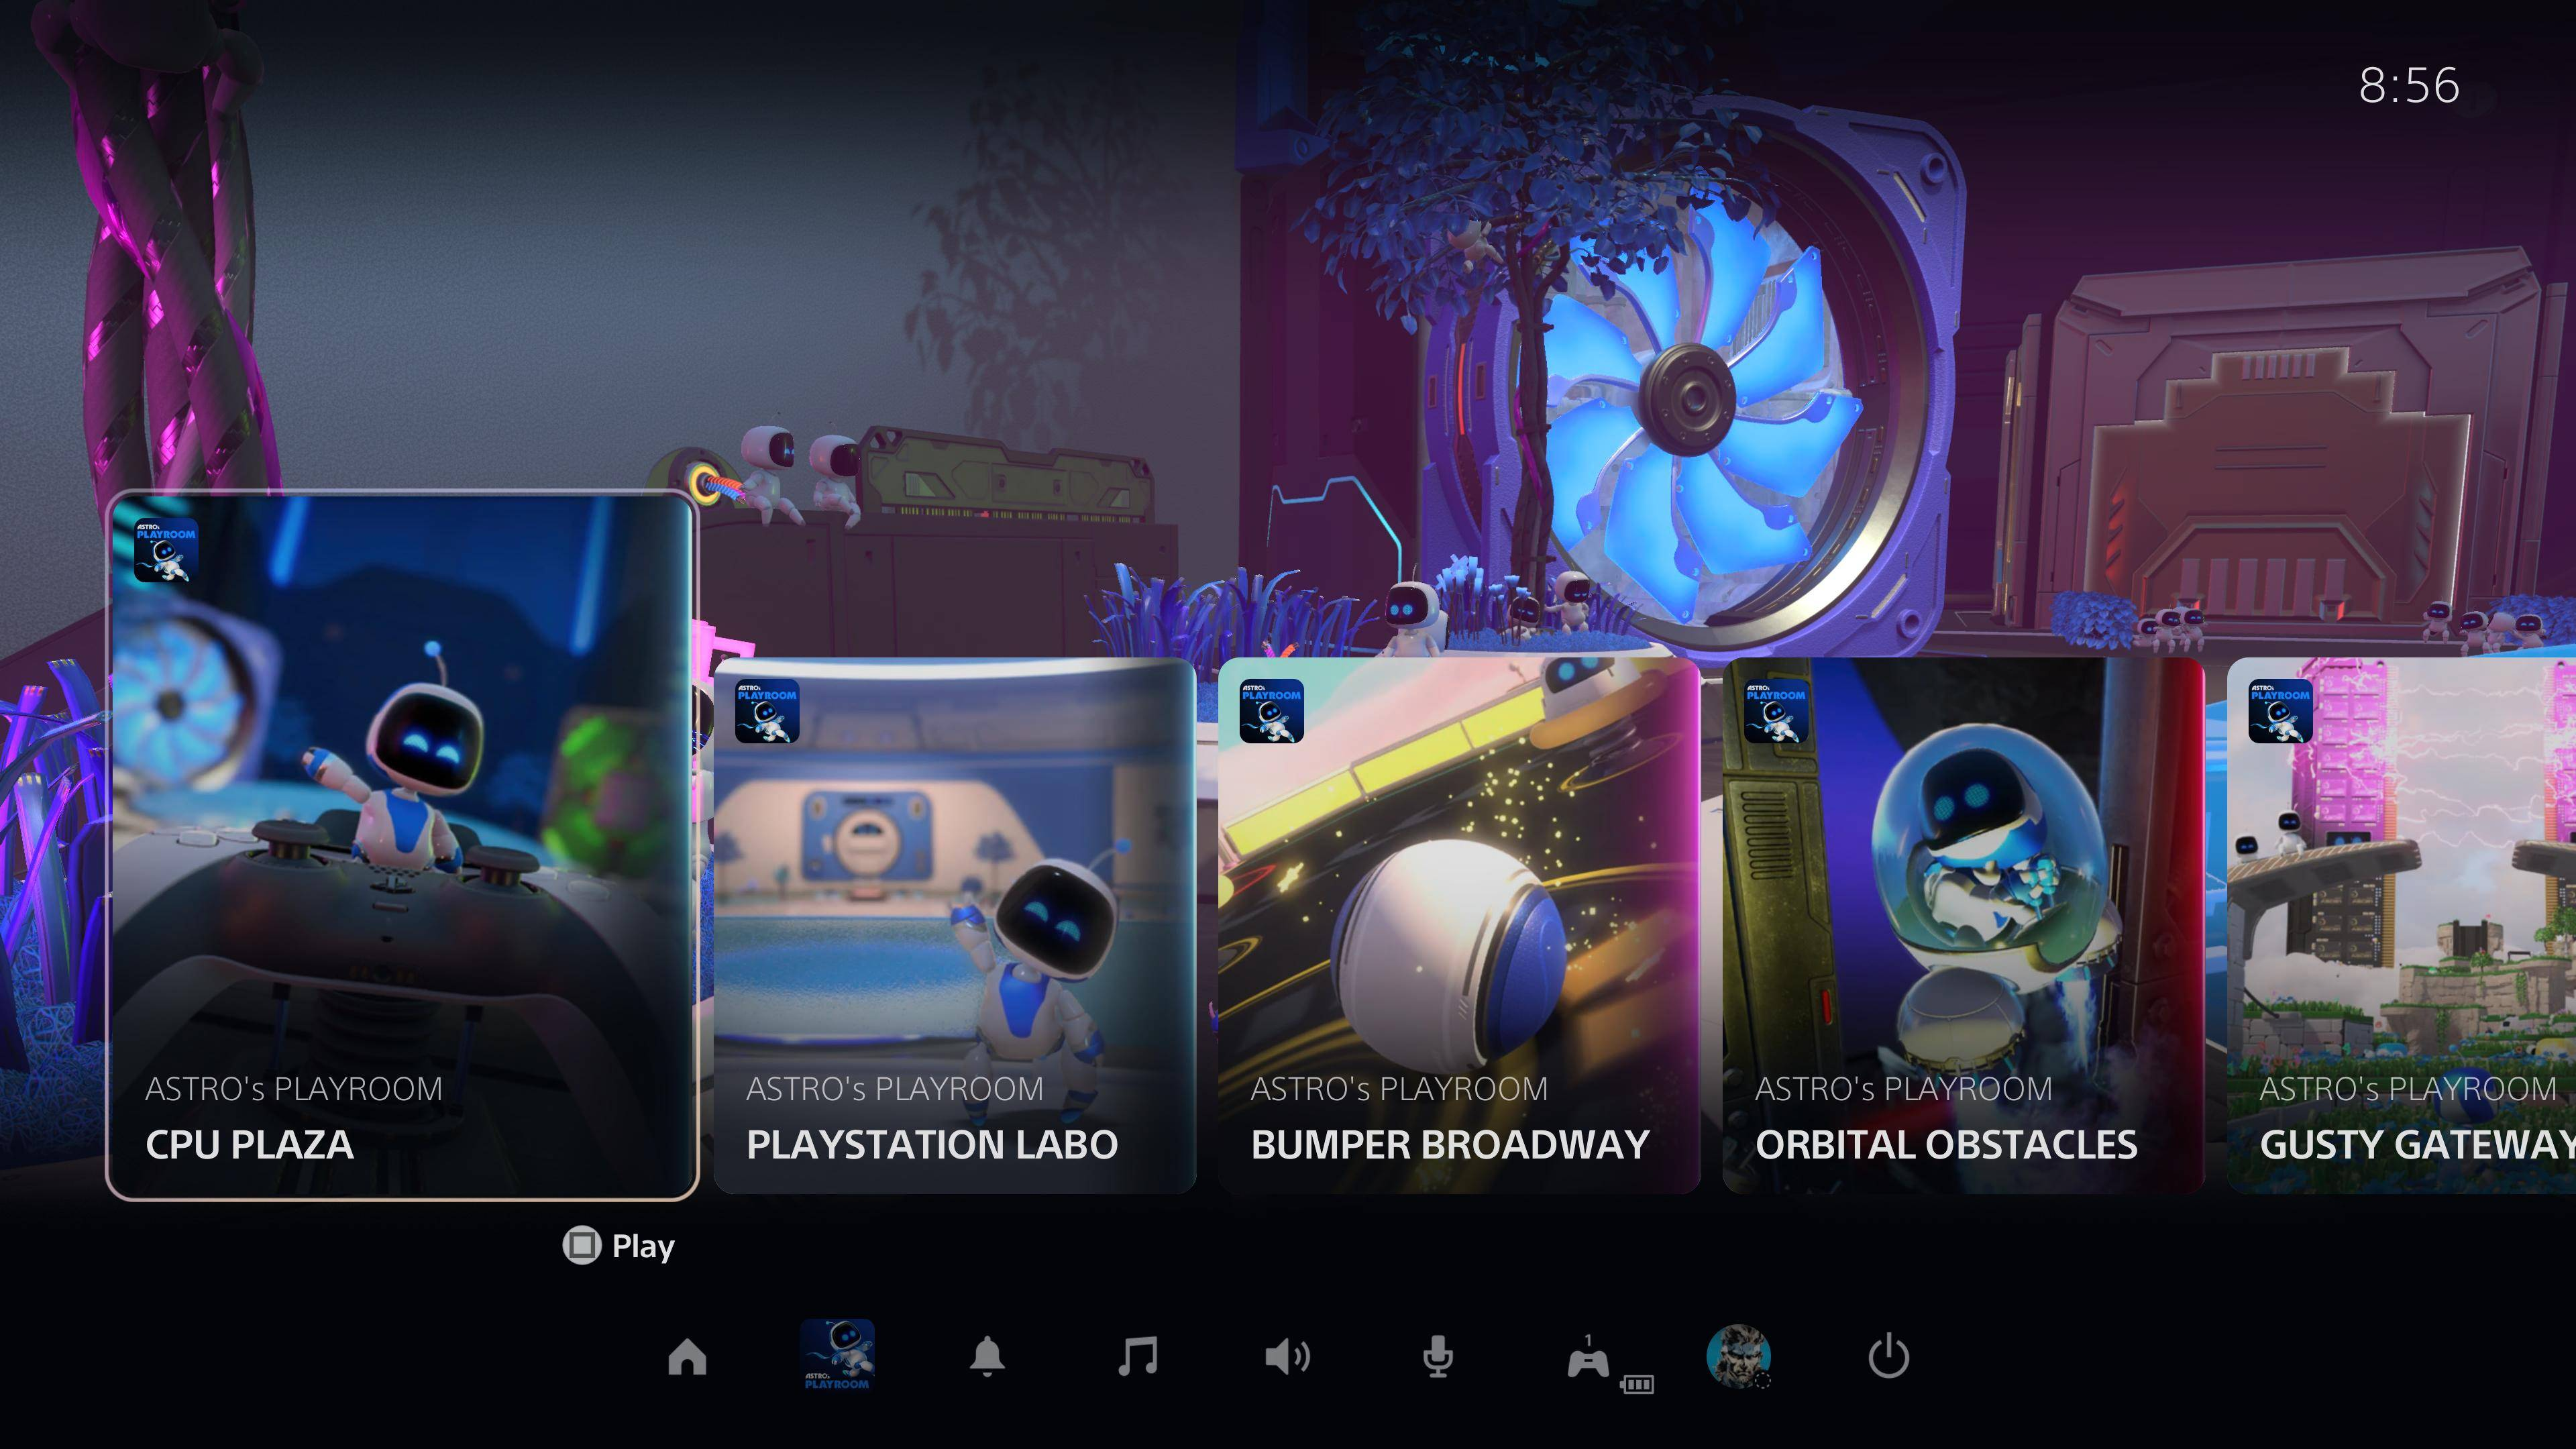 PS5 cards